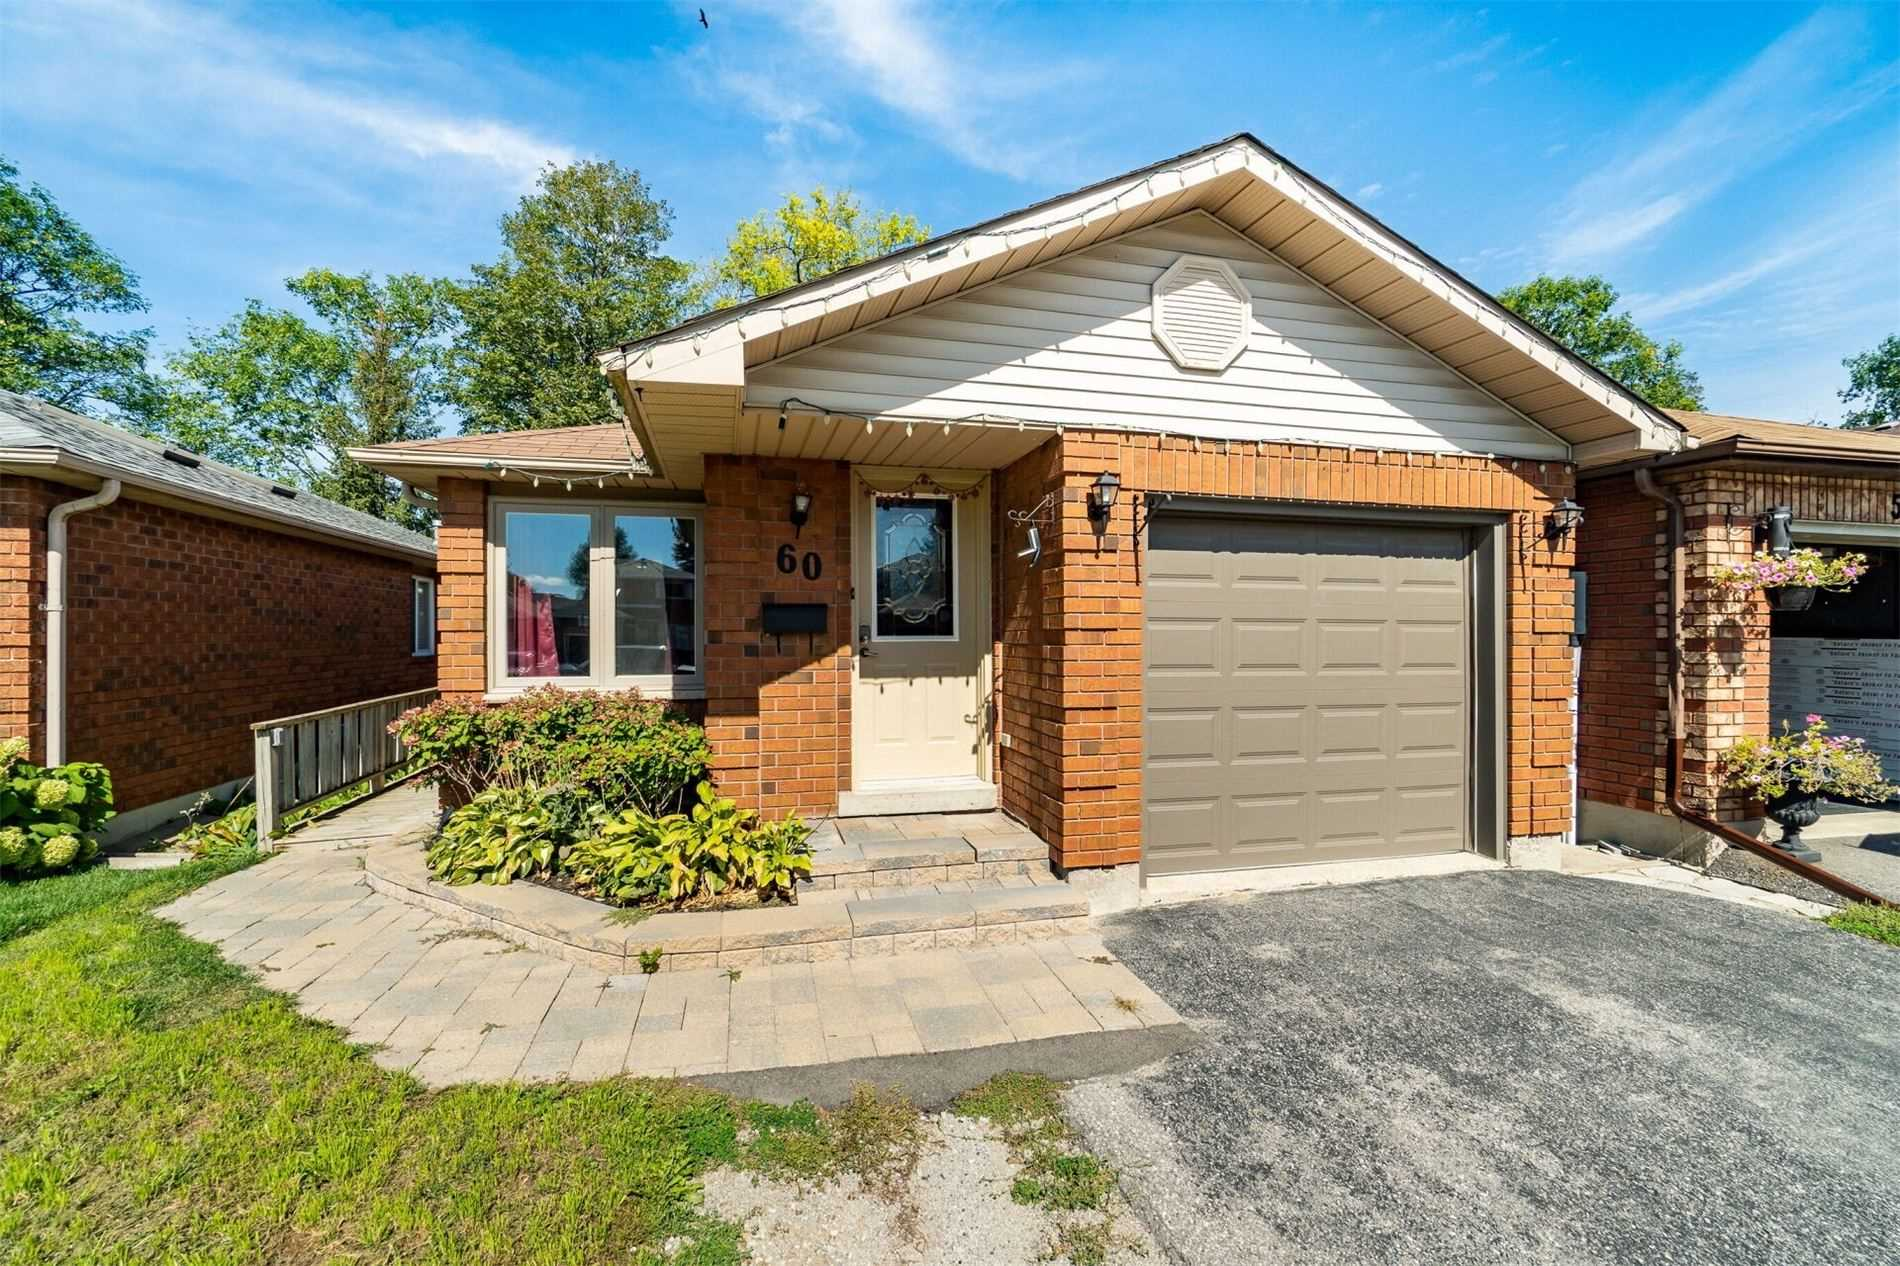 Detached house For Sale In Barrie - 60 Ferguson Dr, Barrie, Ontario, Canada L4N7B5 , 2 Bedrooms Bedrooms, ,2 BathroomsBathrooms,Detached,For Sale,Ferguson